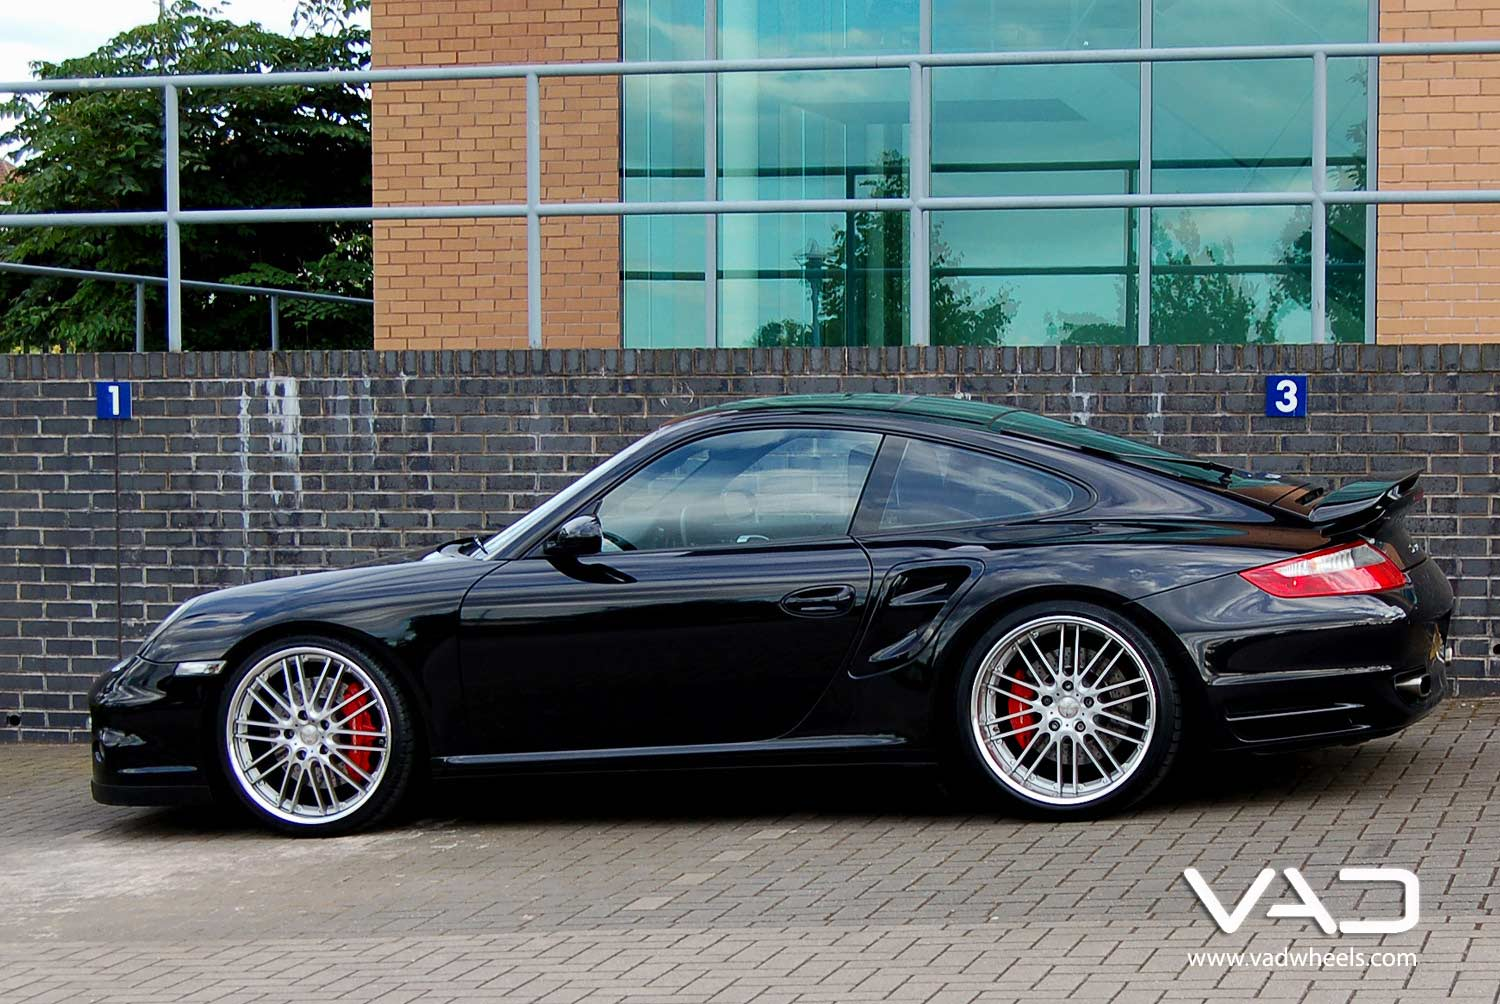 Porsche-997-Turbo-Fitted-With-20''-Trafficstar-RTM-Silver-Side-Profile